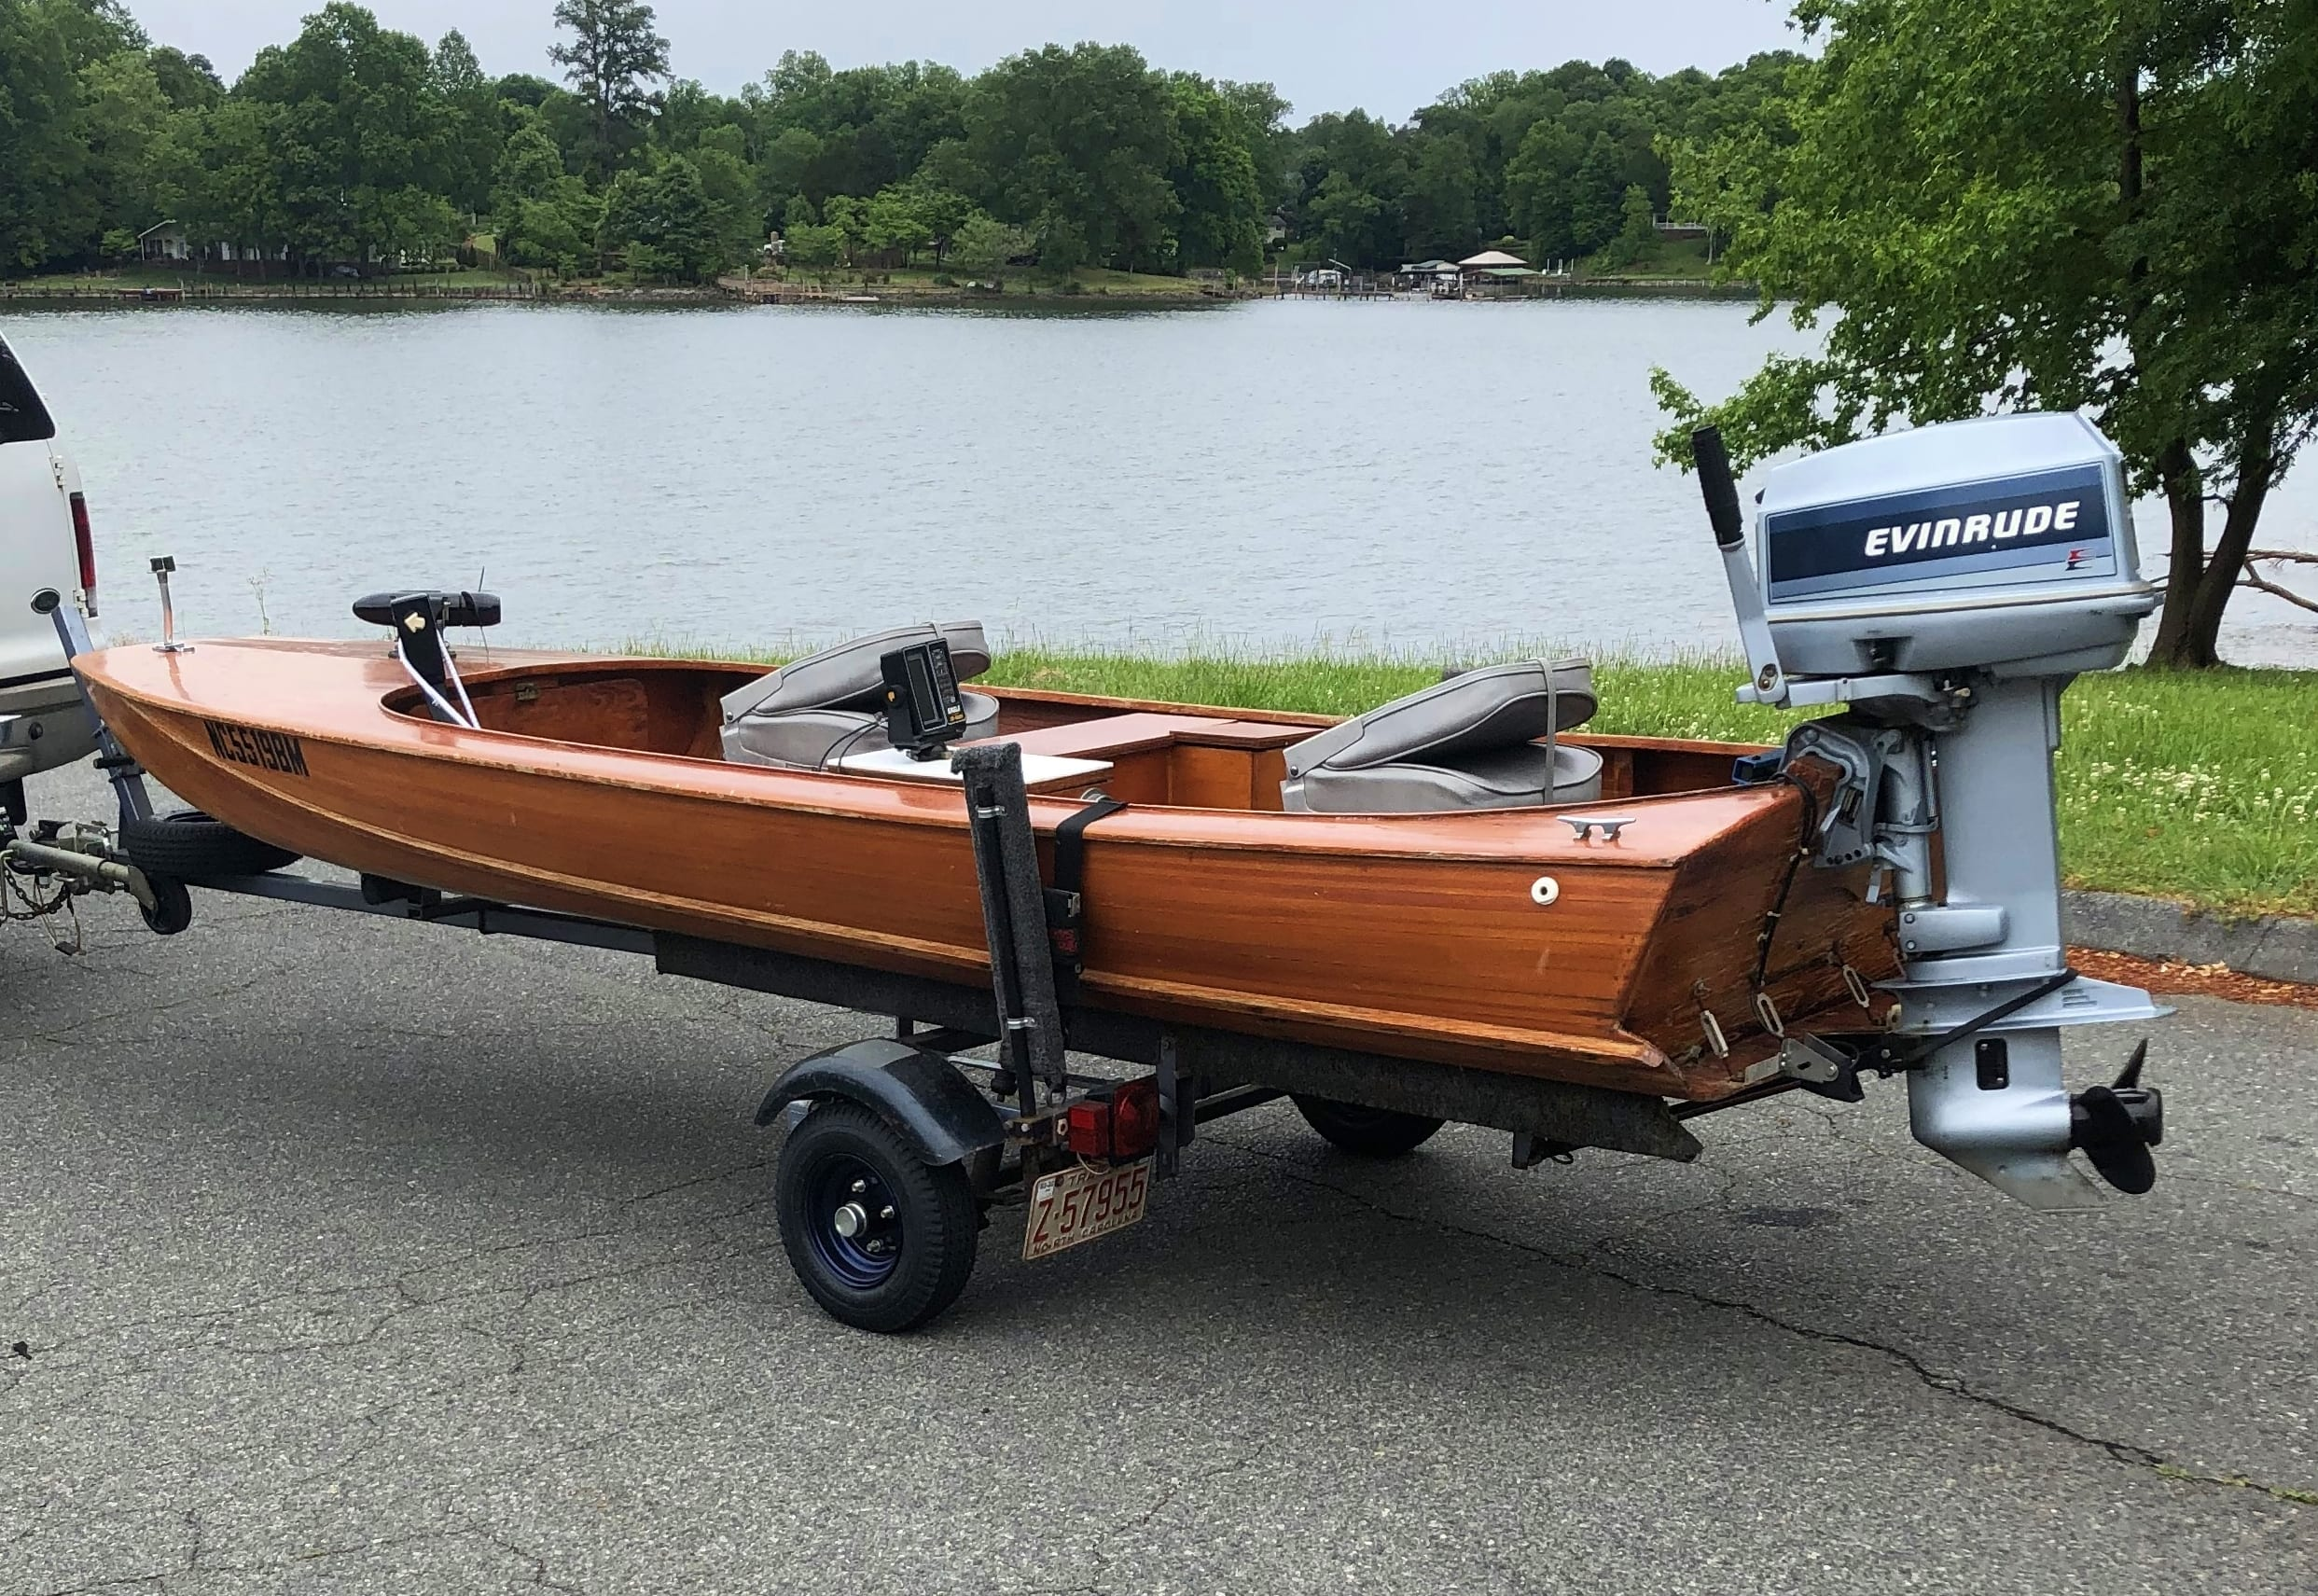 One Owner 1985 14' Fiberglass Covered Cypress Strip Wooden Boat and Trailer